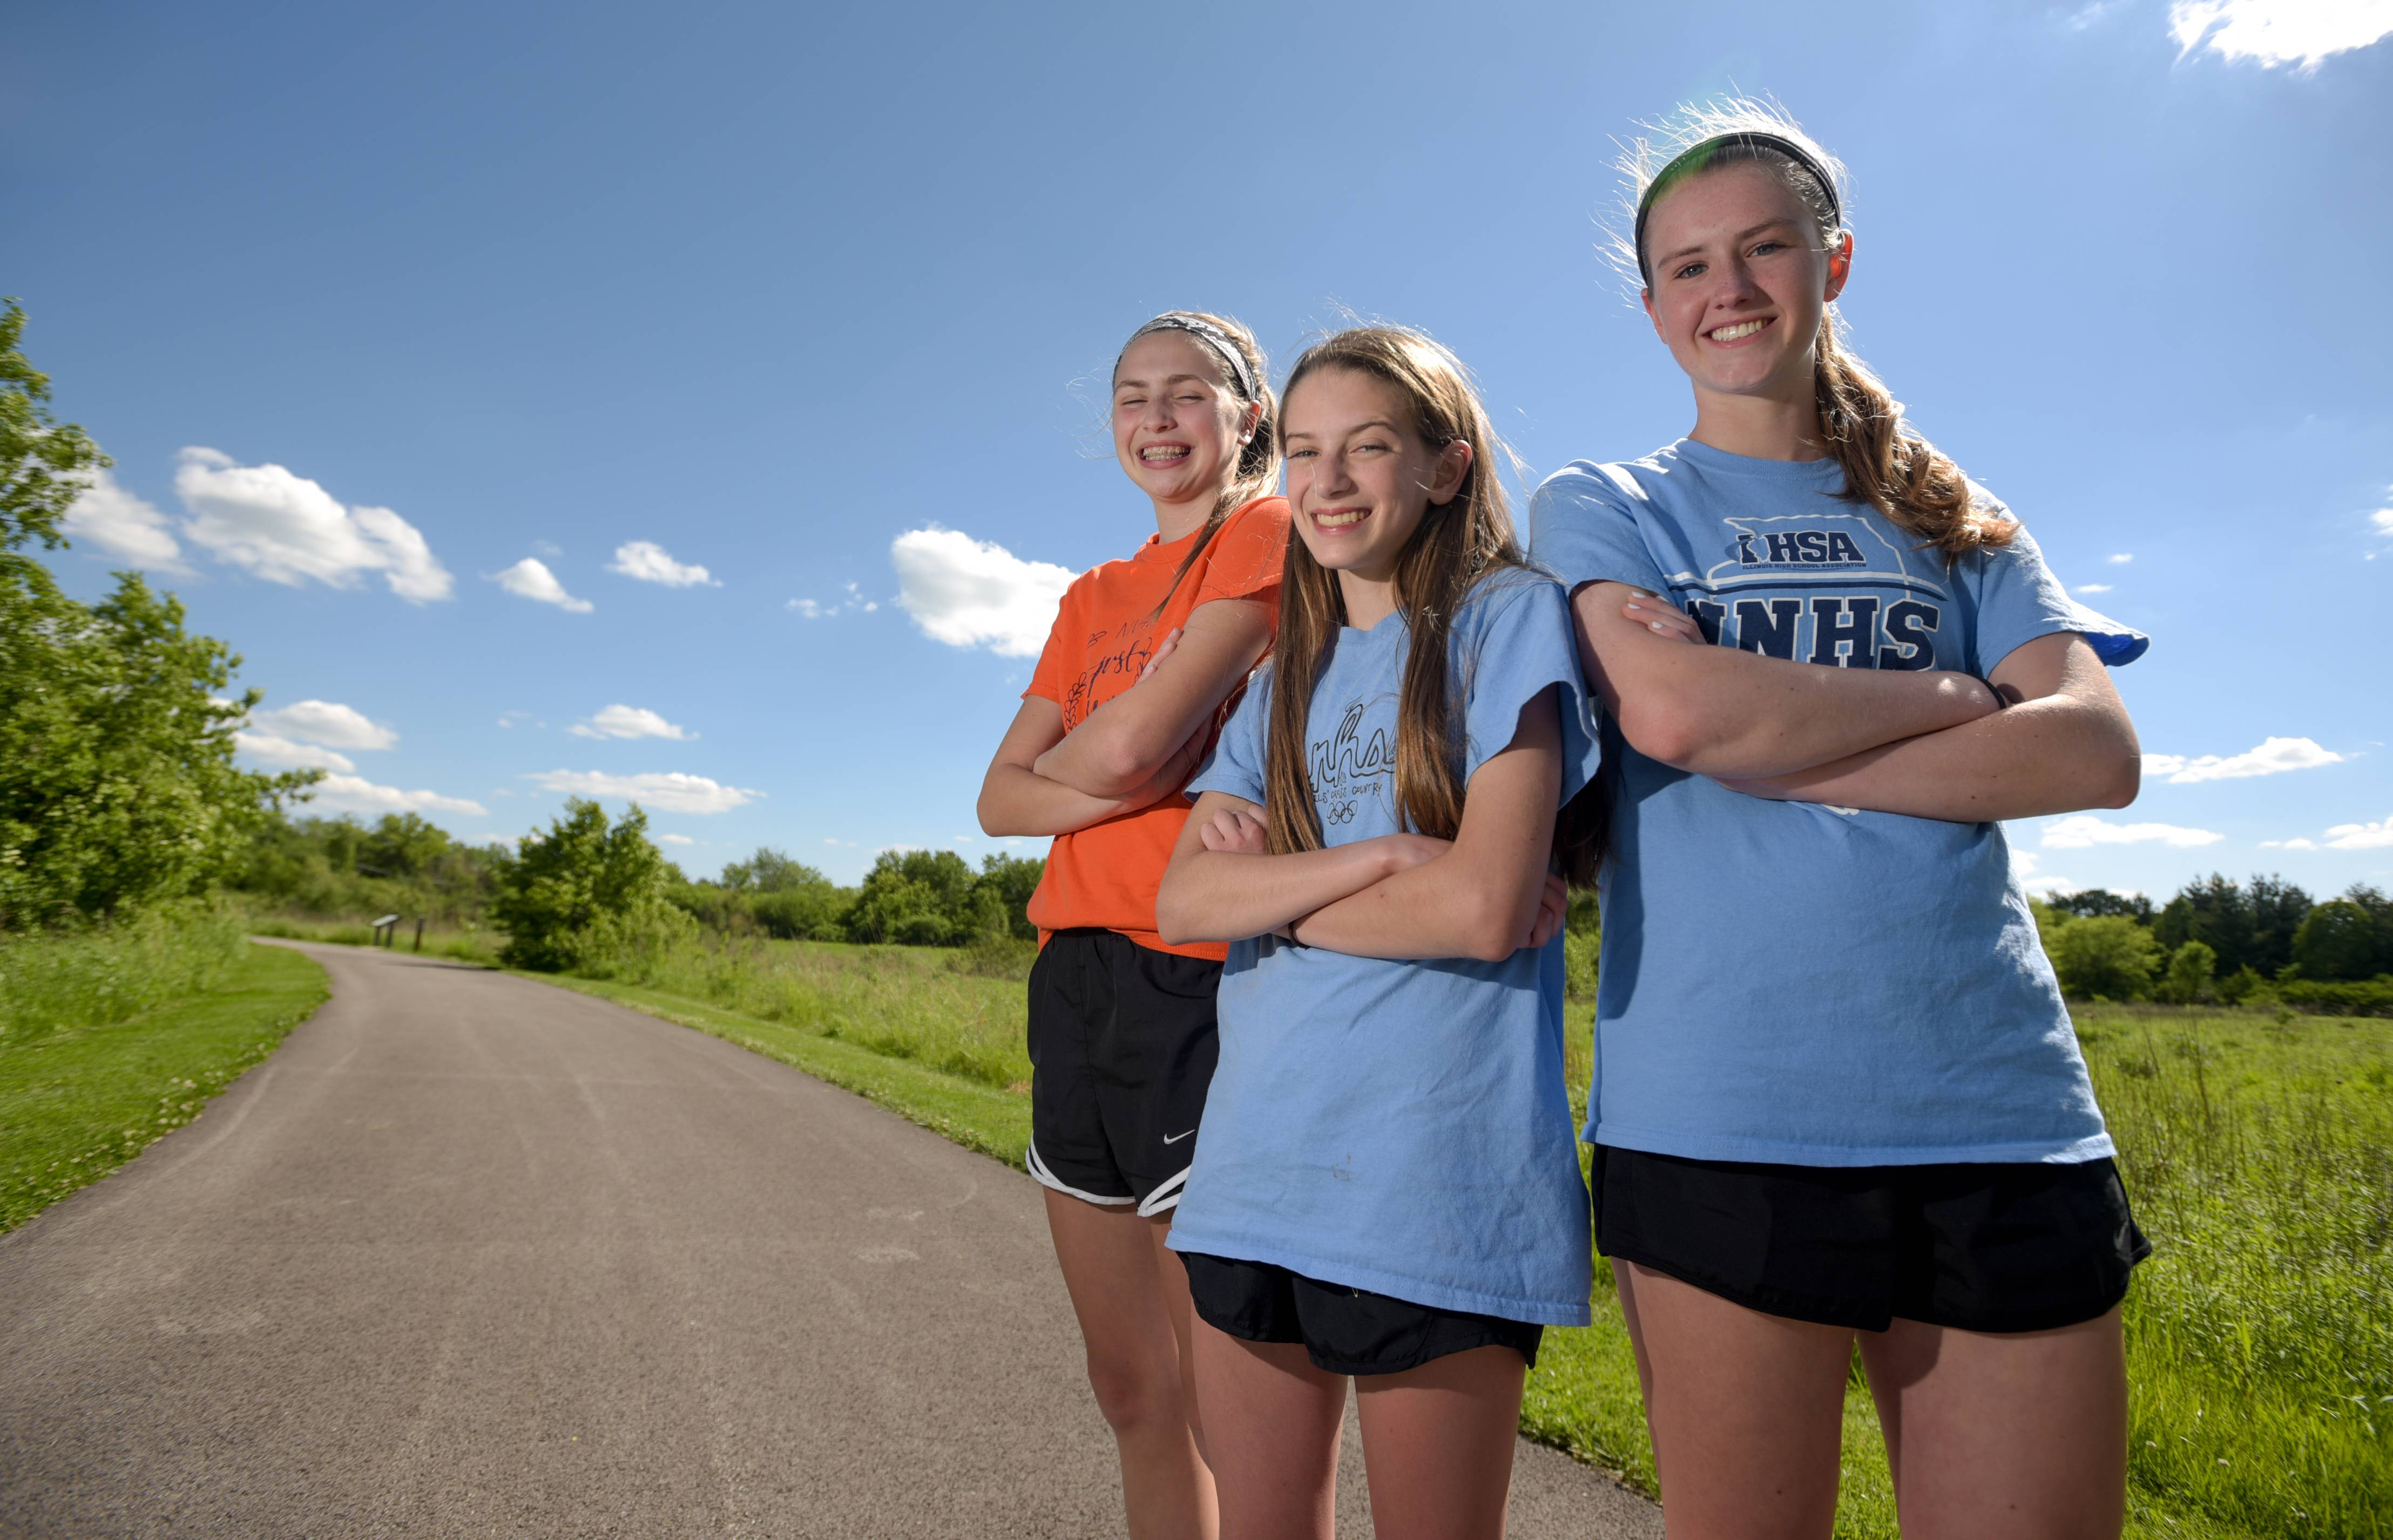 Naperville teammates planning 'RAGE' 5K against Celiac disease